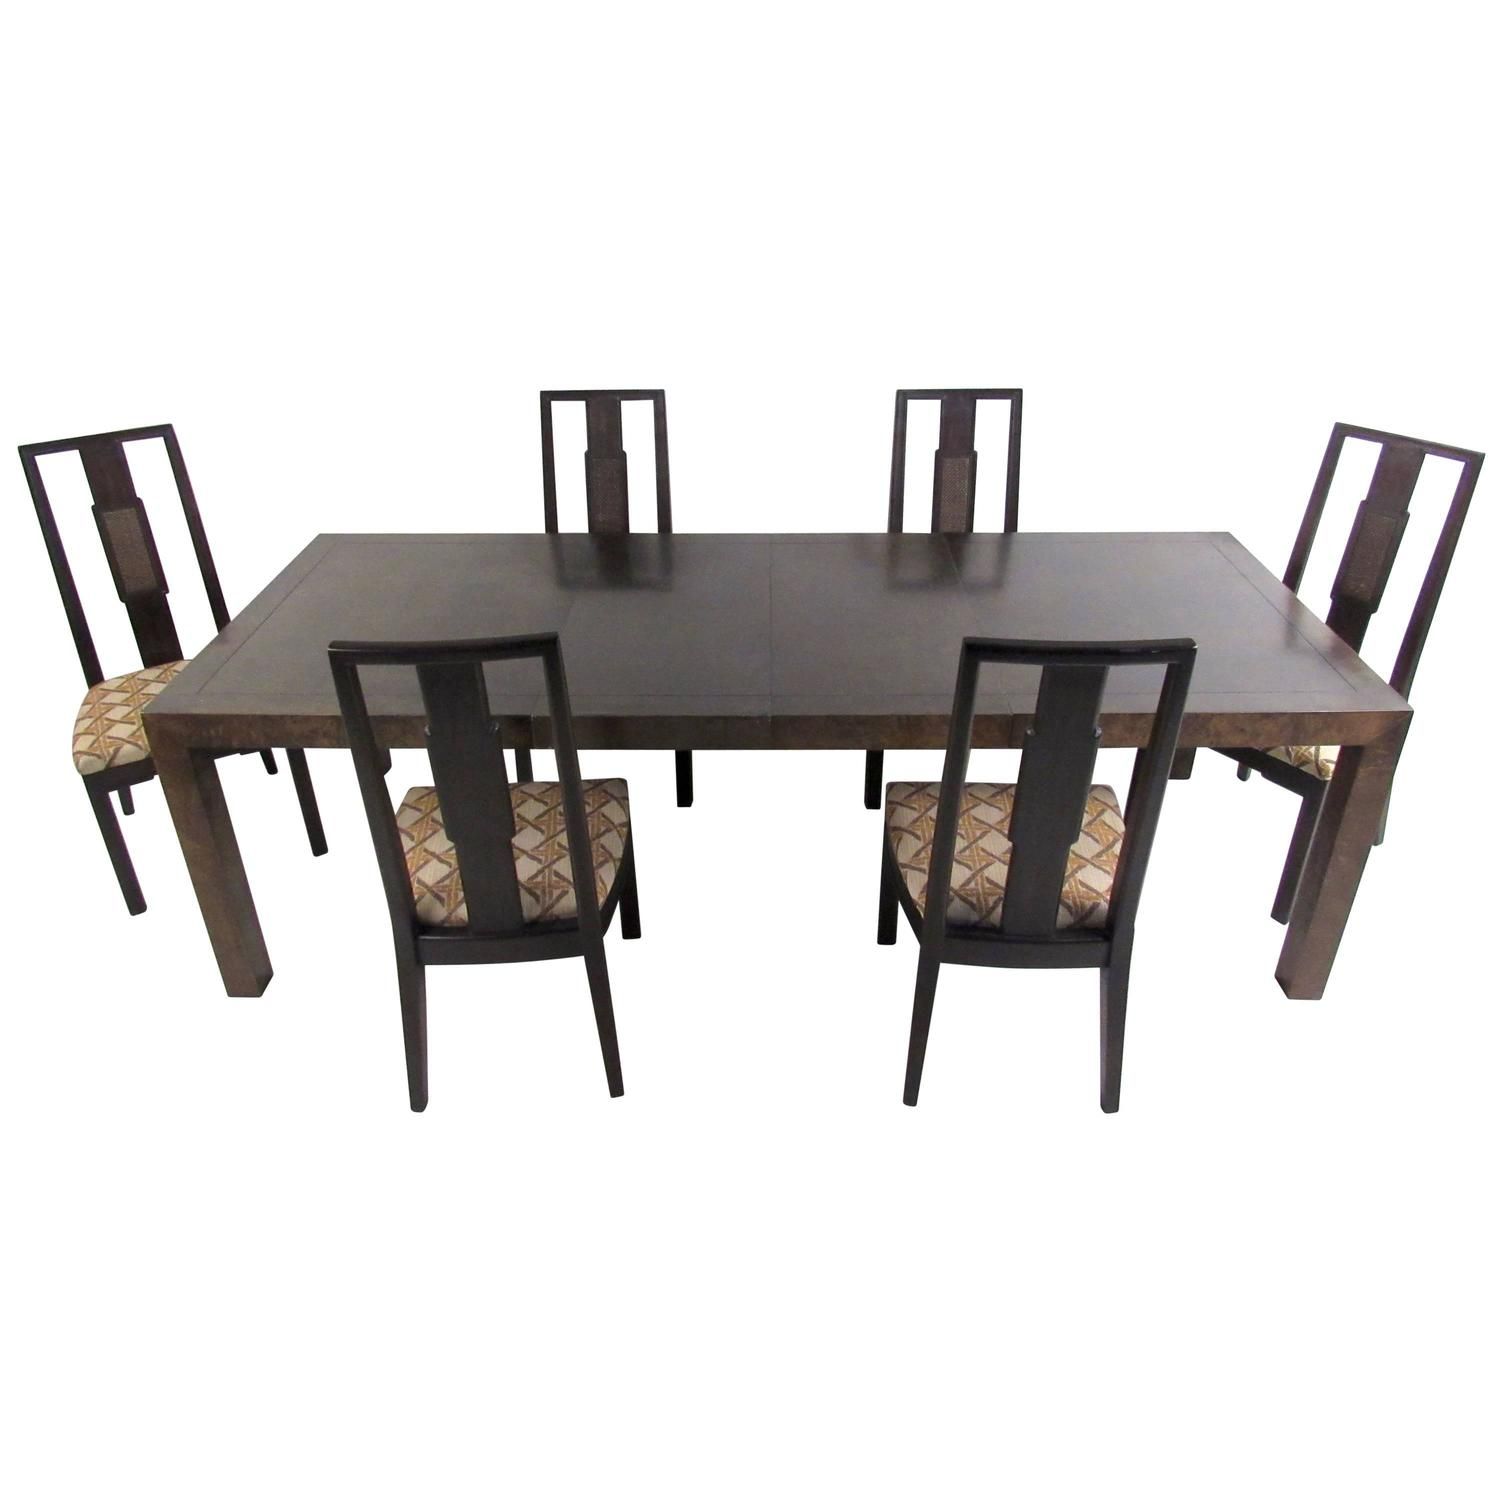 Mid century modern dining room set by john stuart for sale for Mid century modern dining rooms